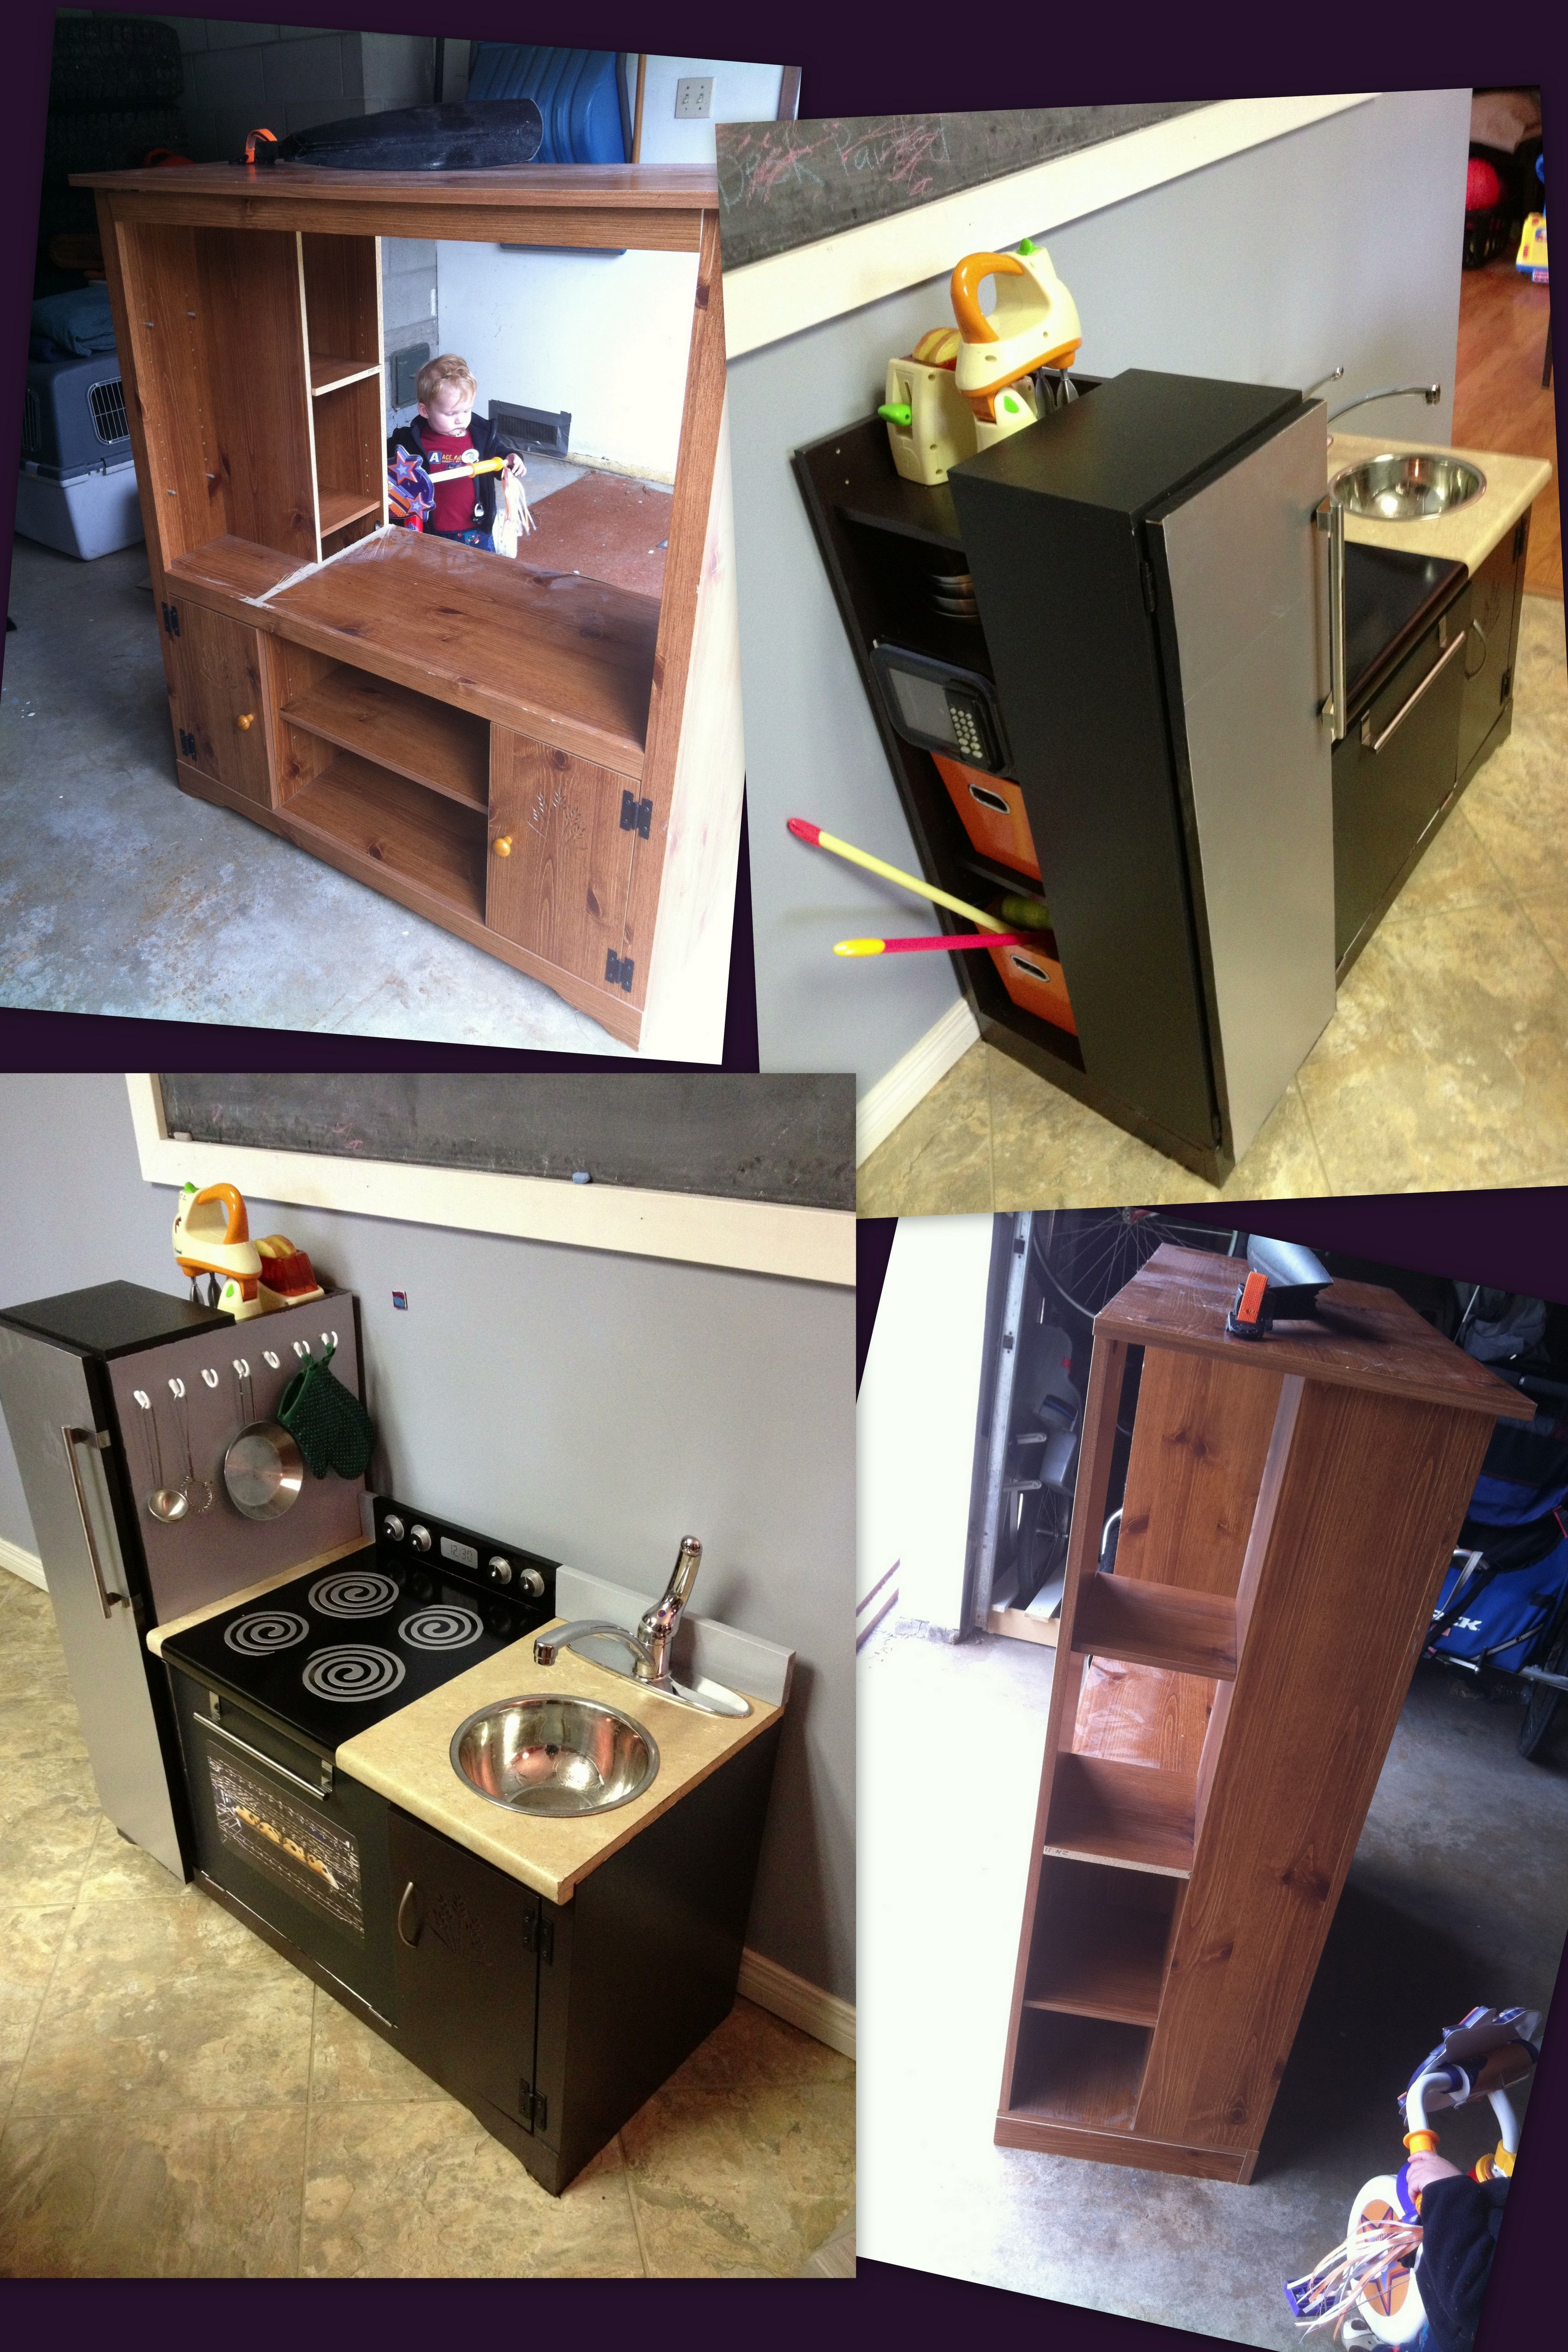 Diy Upcycle Tv Entertainment Stand Into Kids Play Kitchen We Used To Have This Same Center